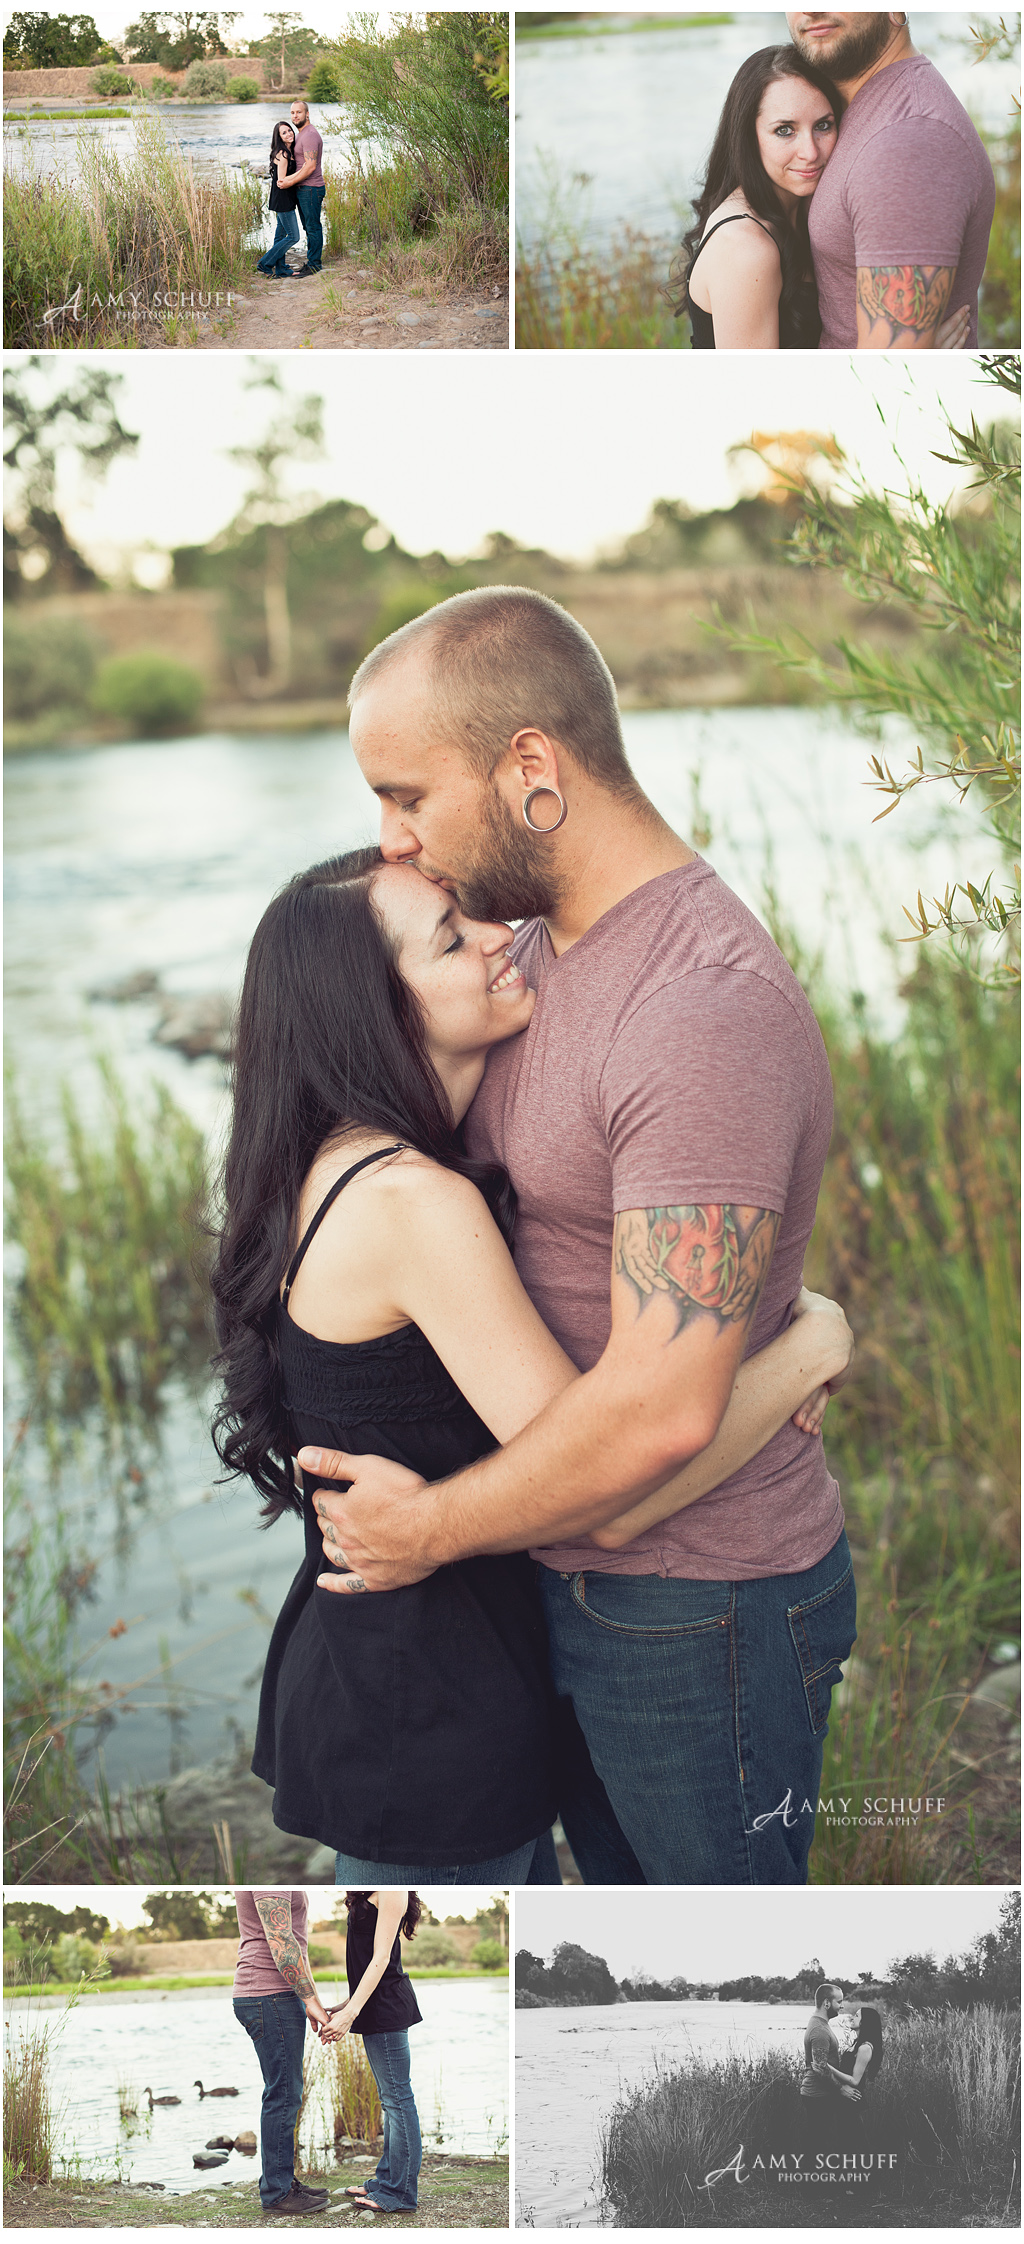 Amy Schuff - Sacramento Engagement Photographer 1